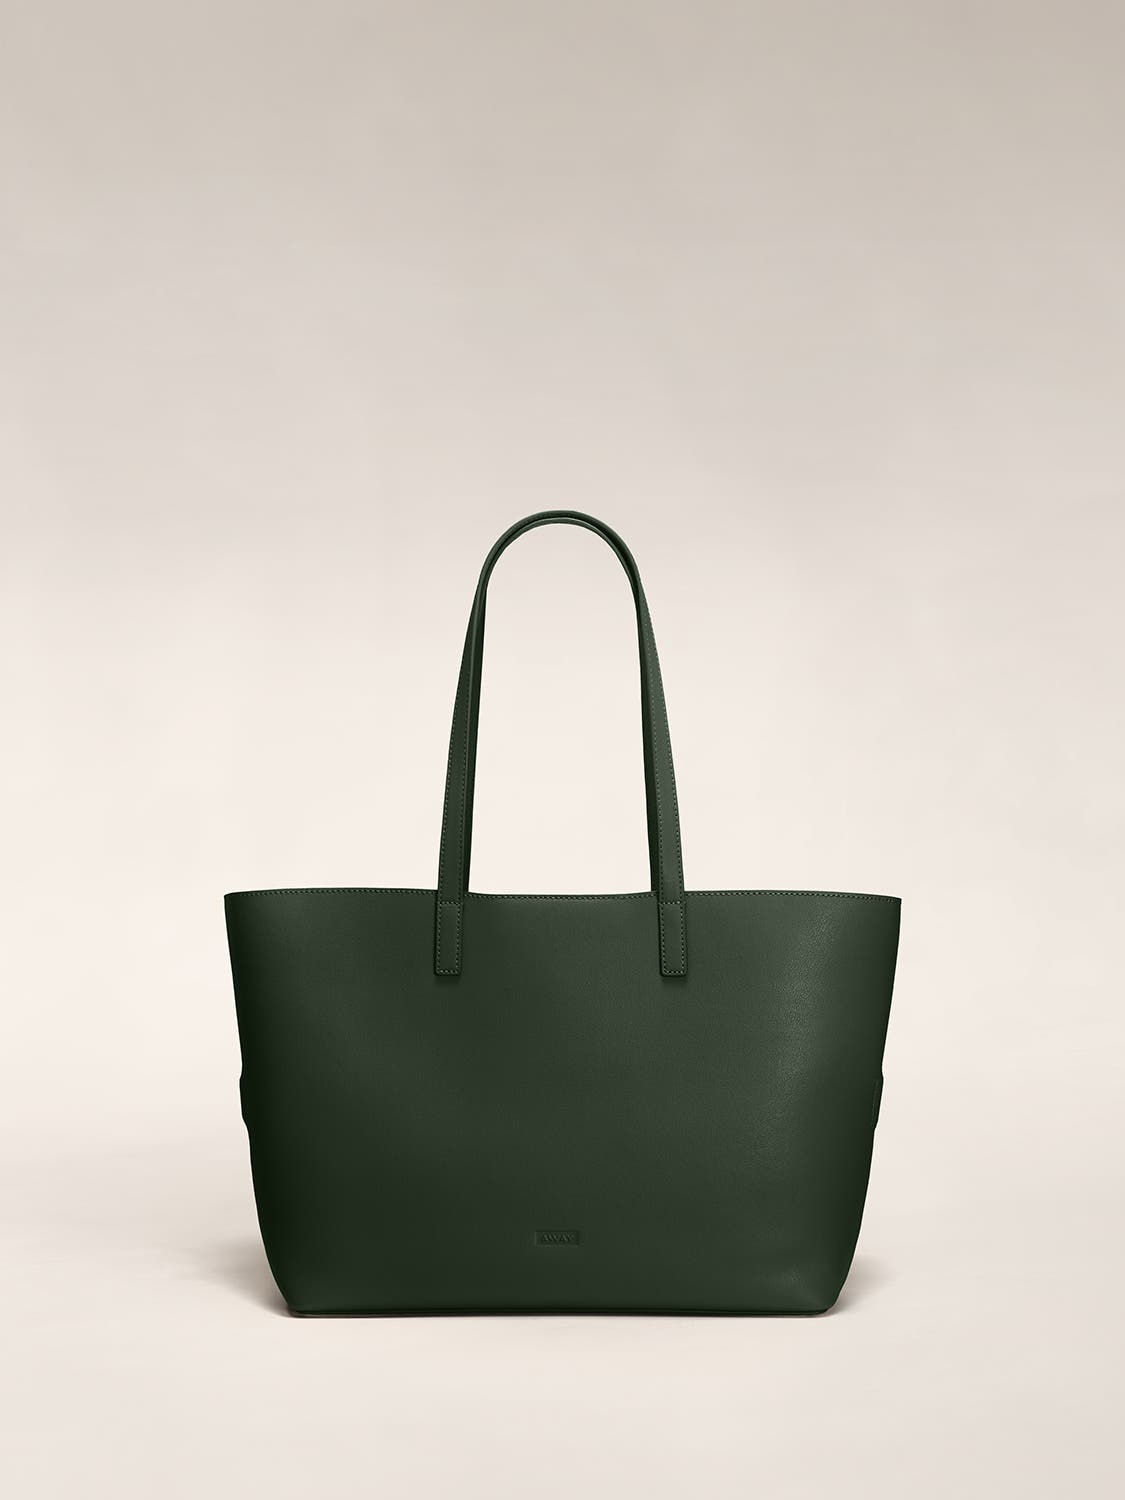 A pine tote shoulder bag in leather.